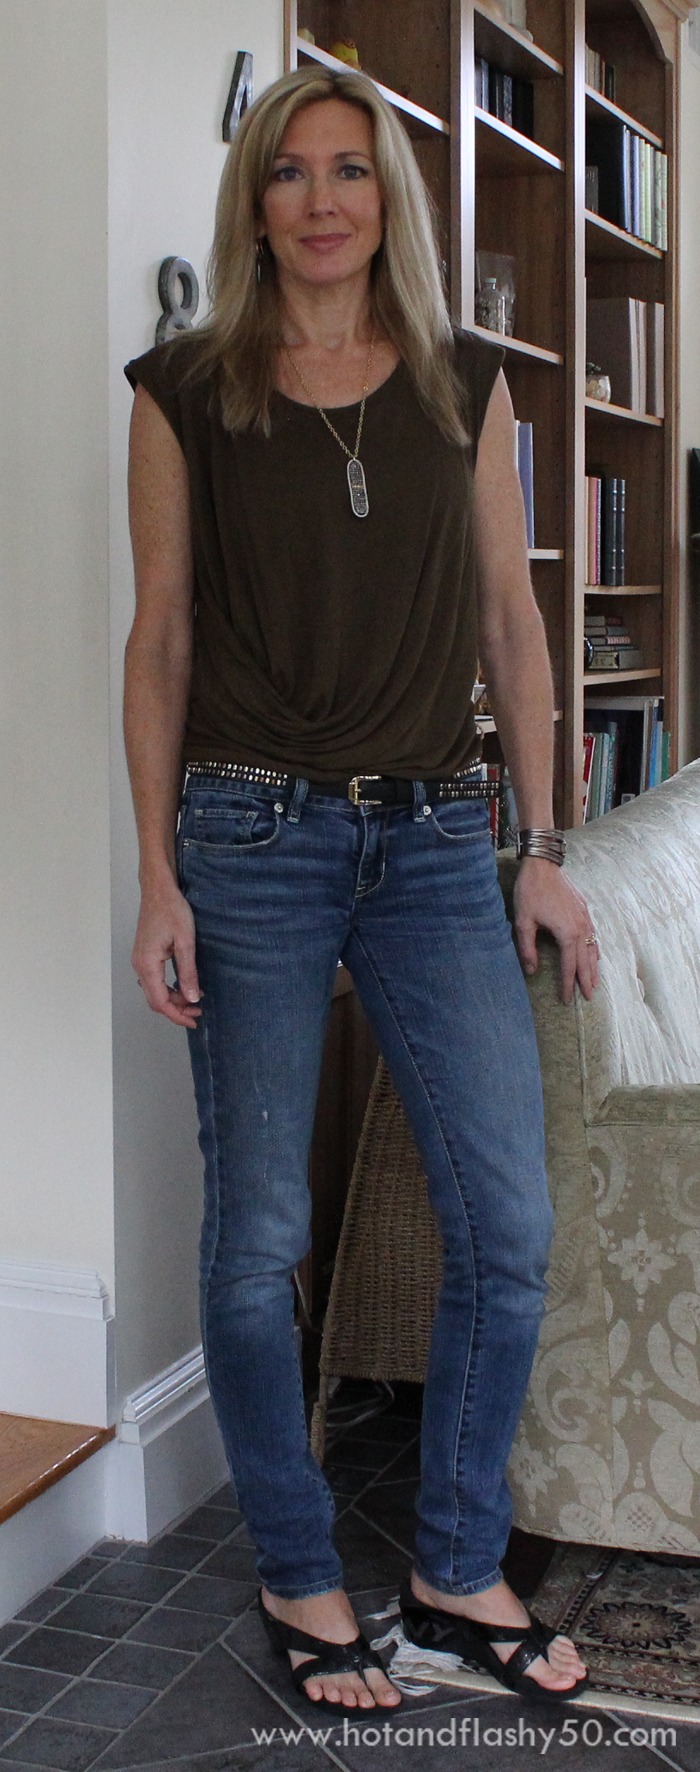 Ootd Tee Shirt Amp Jeans For A Warm Fall Day